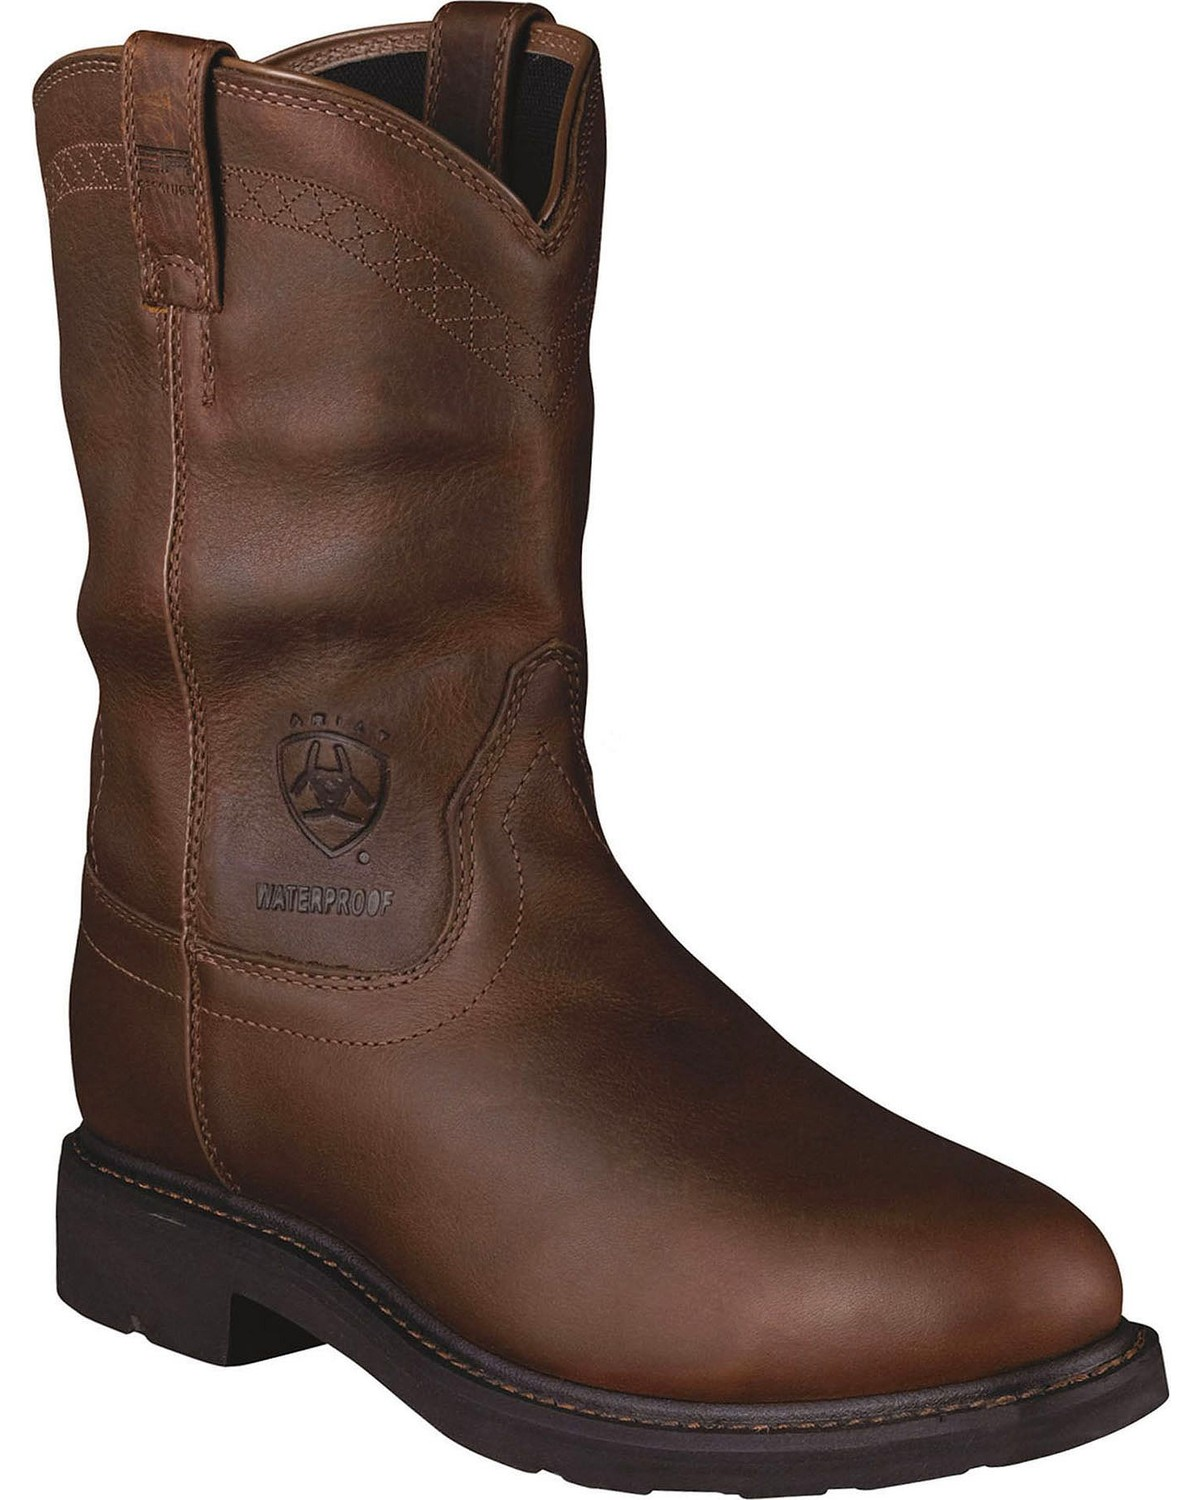 Men's Ariat Sierra Delta H2O Steel Toe Work Boot, Size: 12 D, Oily Distressed Brown Leather